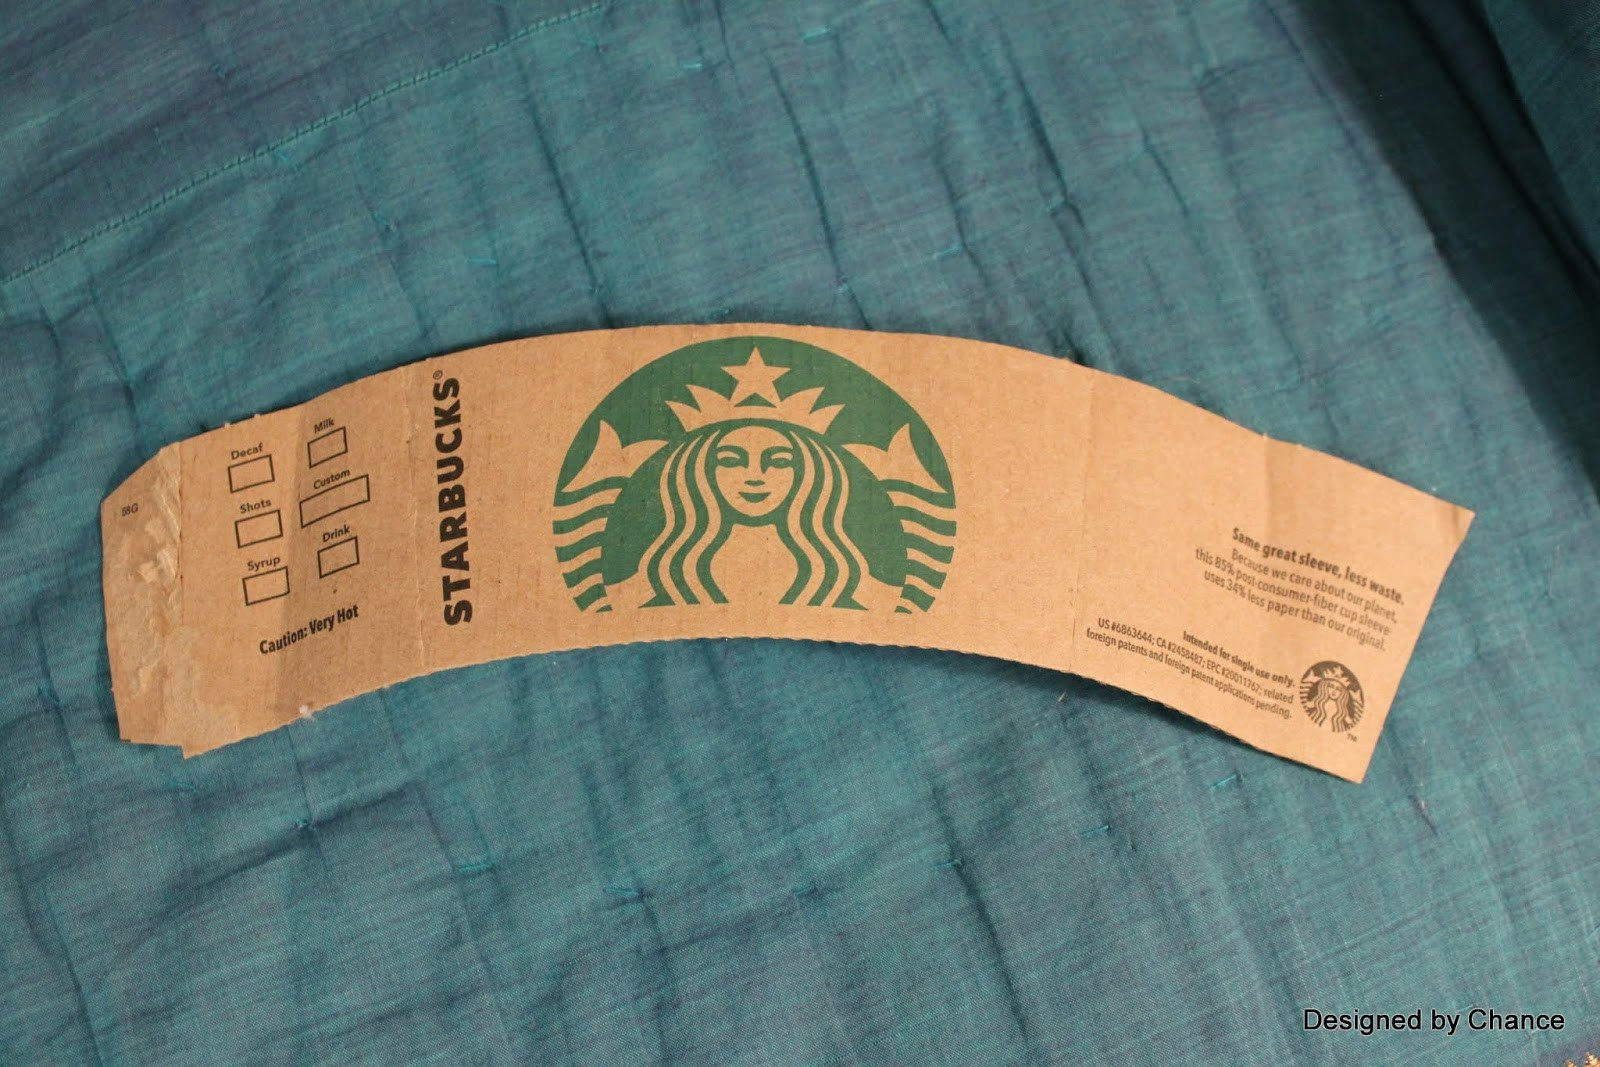 Starbucks Sleeve Template Designed by Chance